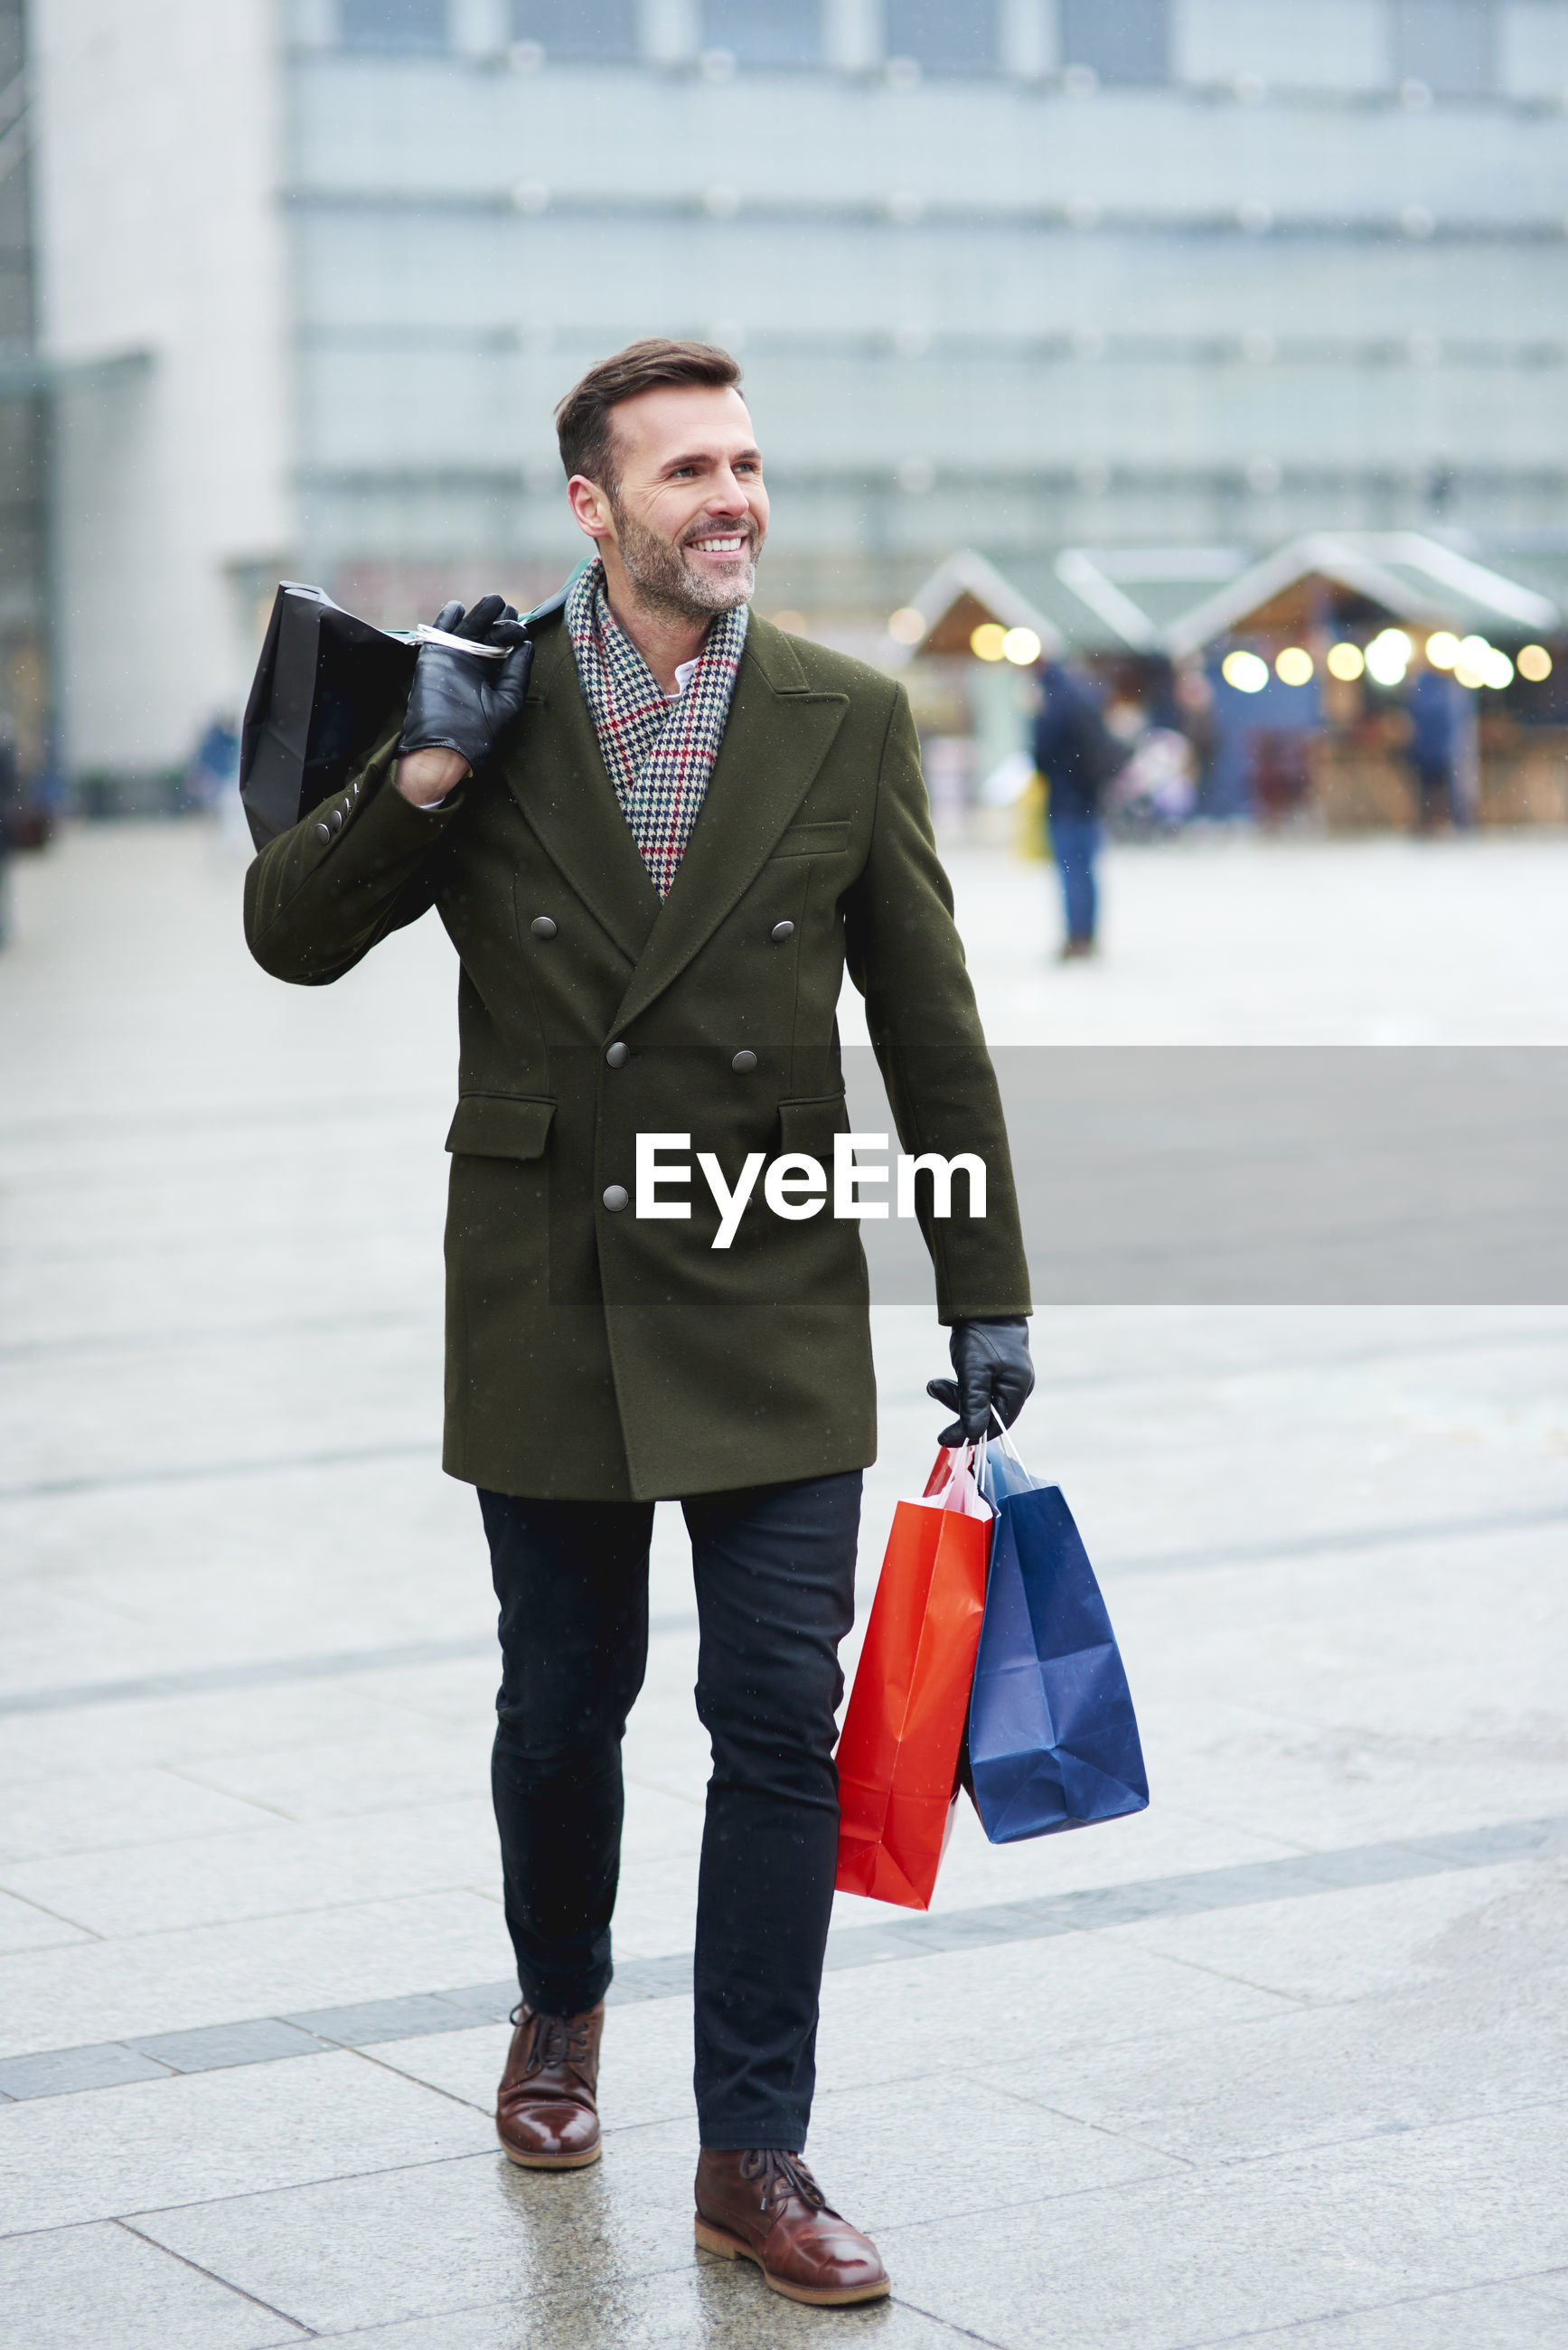 Man holding shopping bags while walking in city during winter